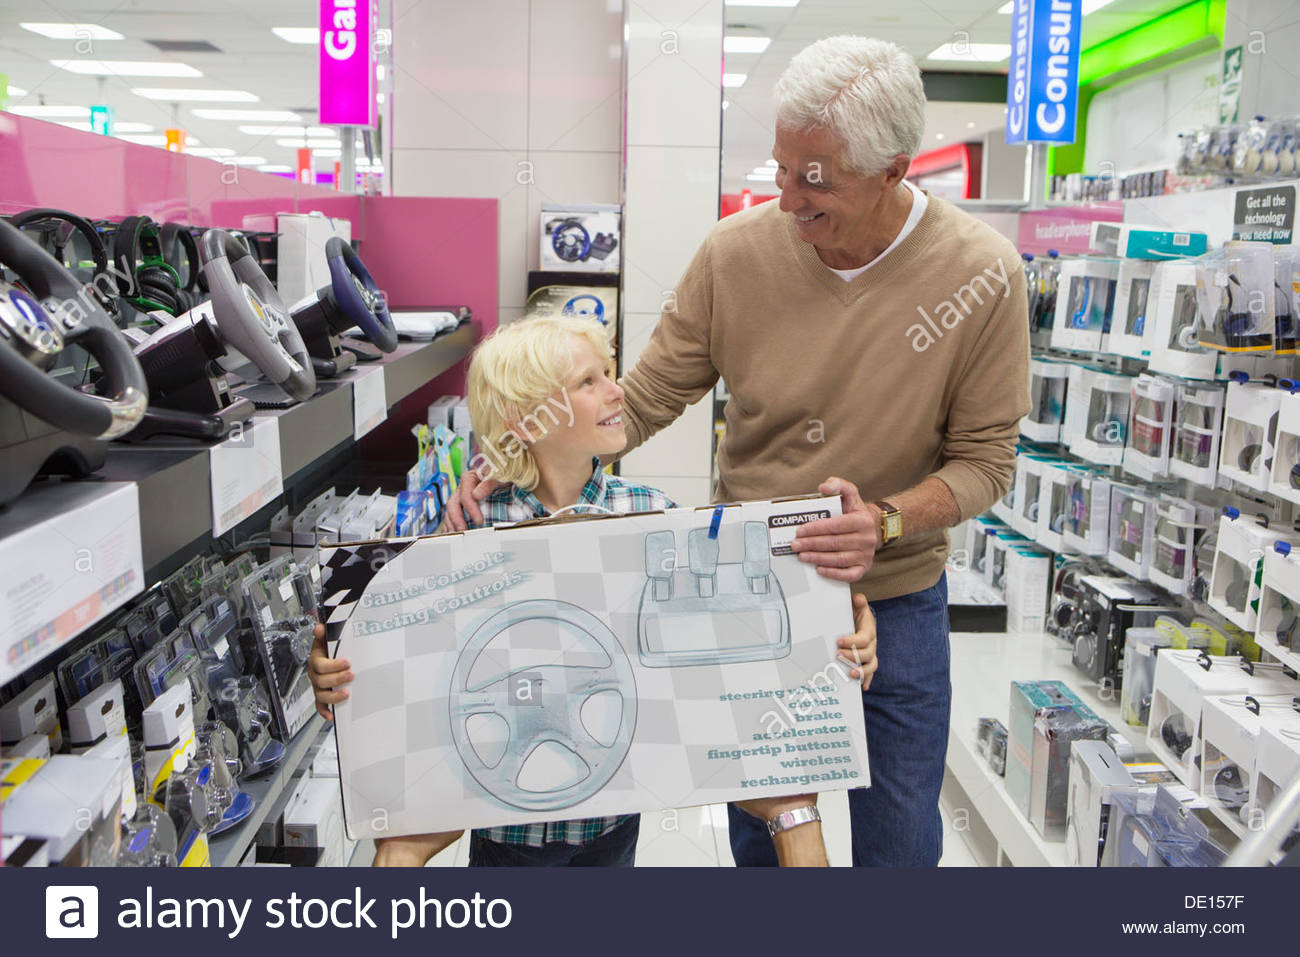 Smiling grandfather and grandson holding jeu vidéo fort dans votre magasin d'électronique Photo Stock